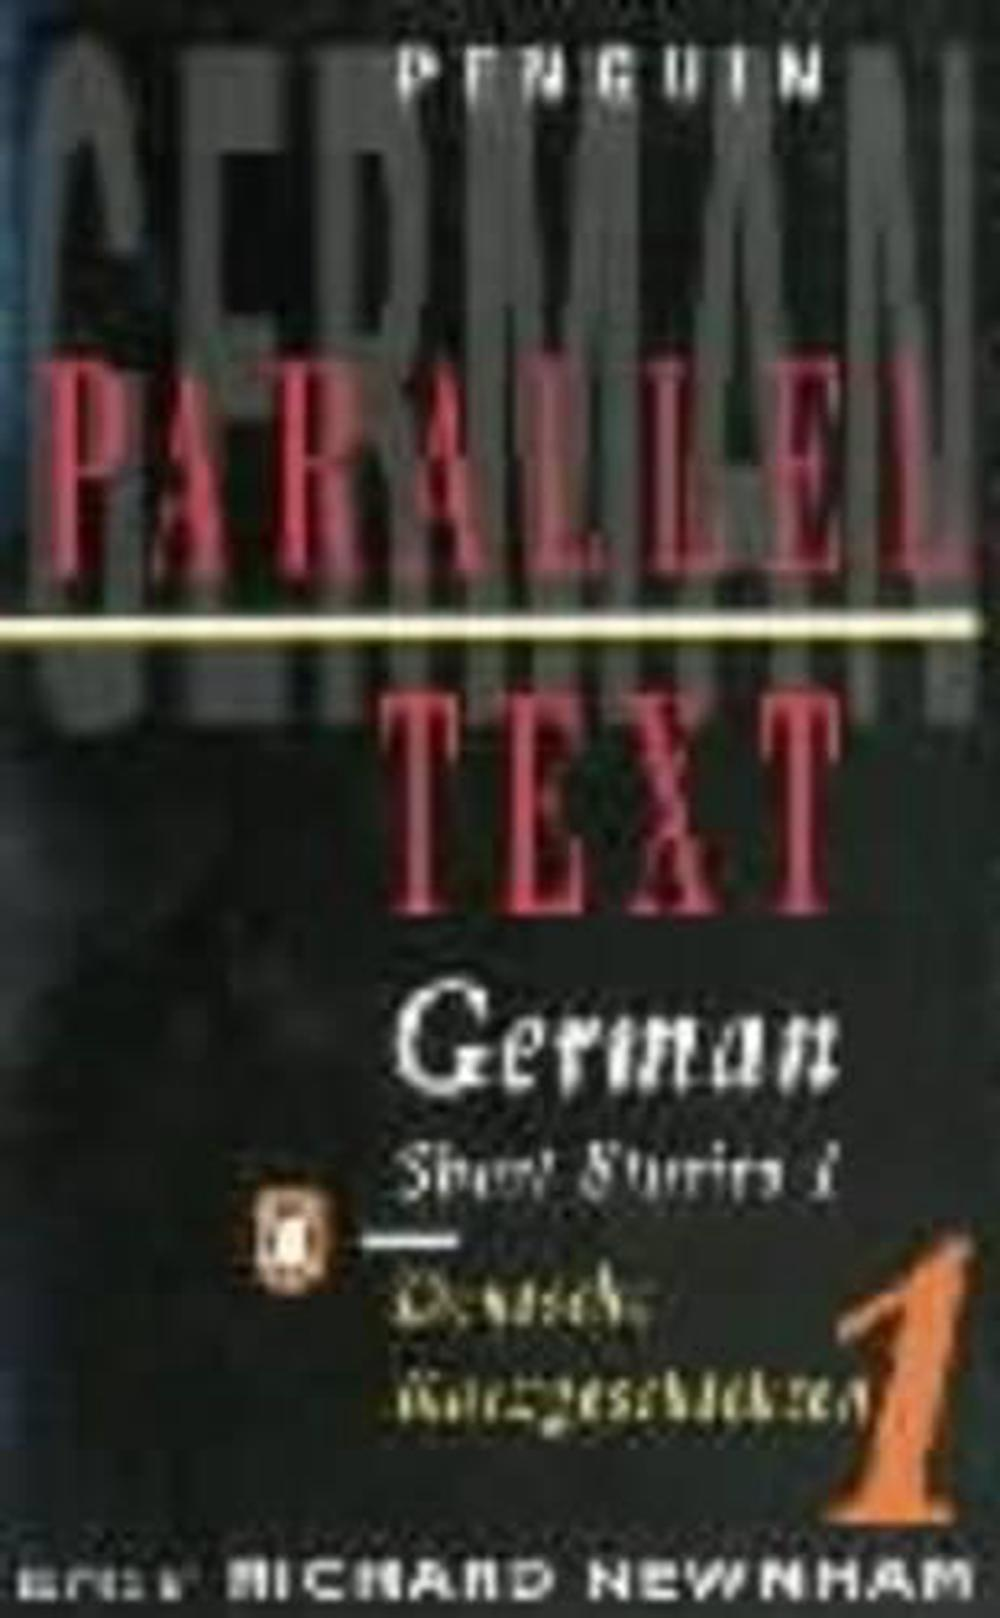 German Short Stories 1